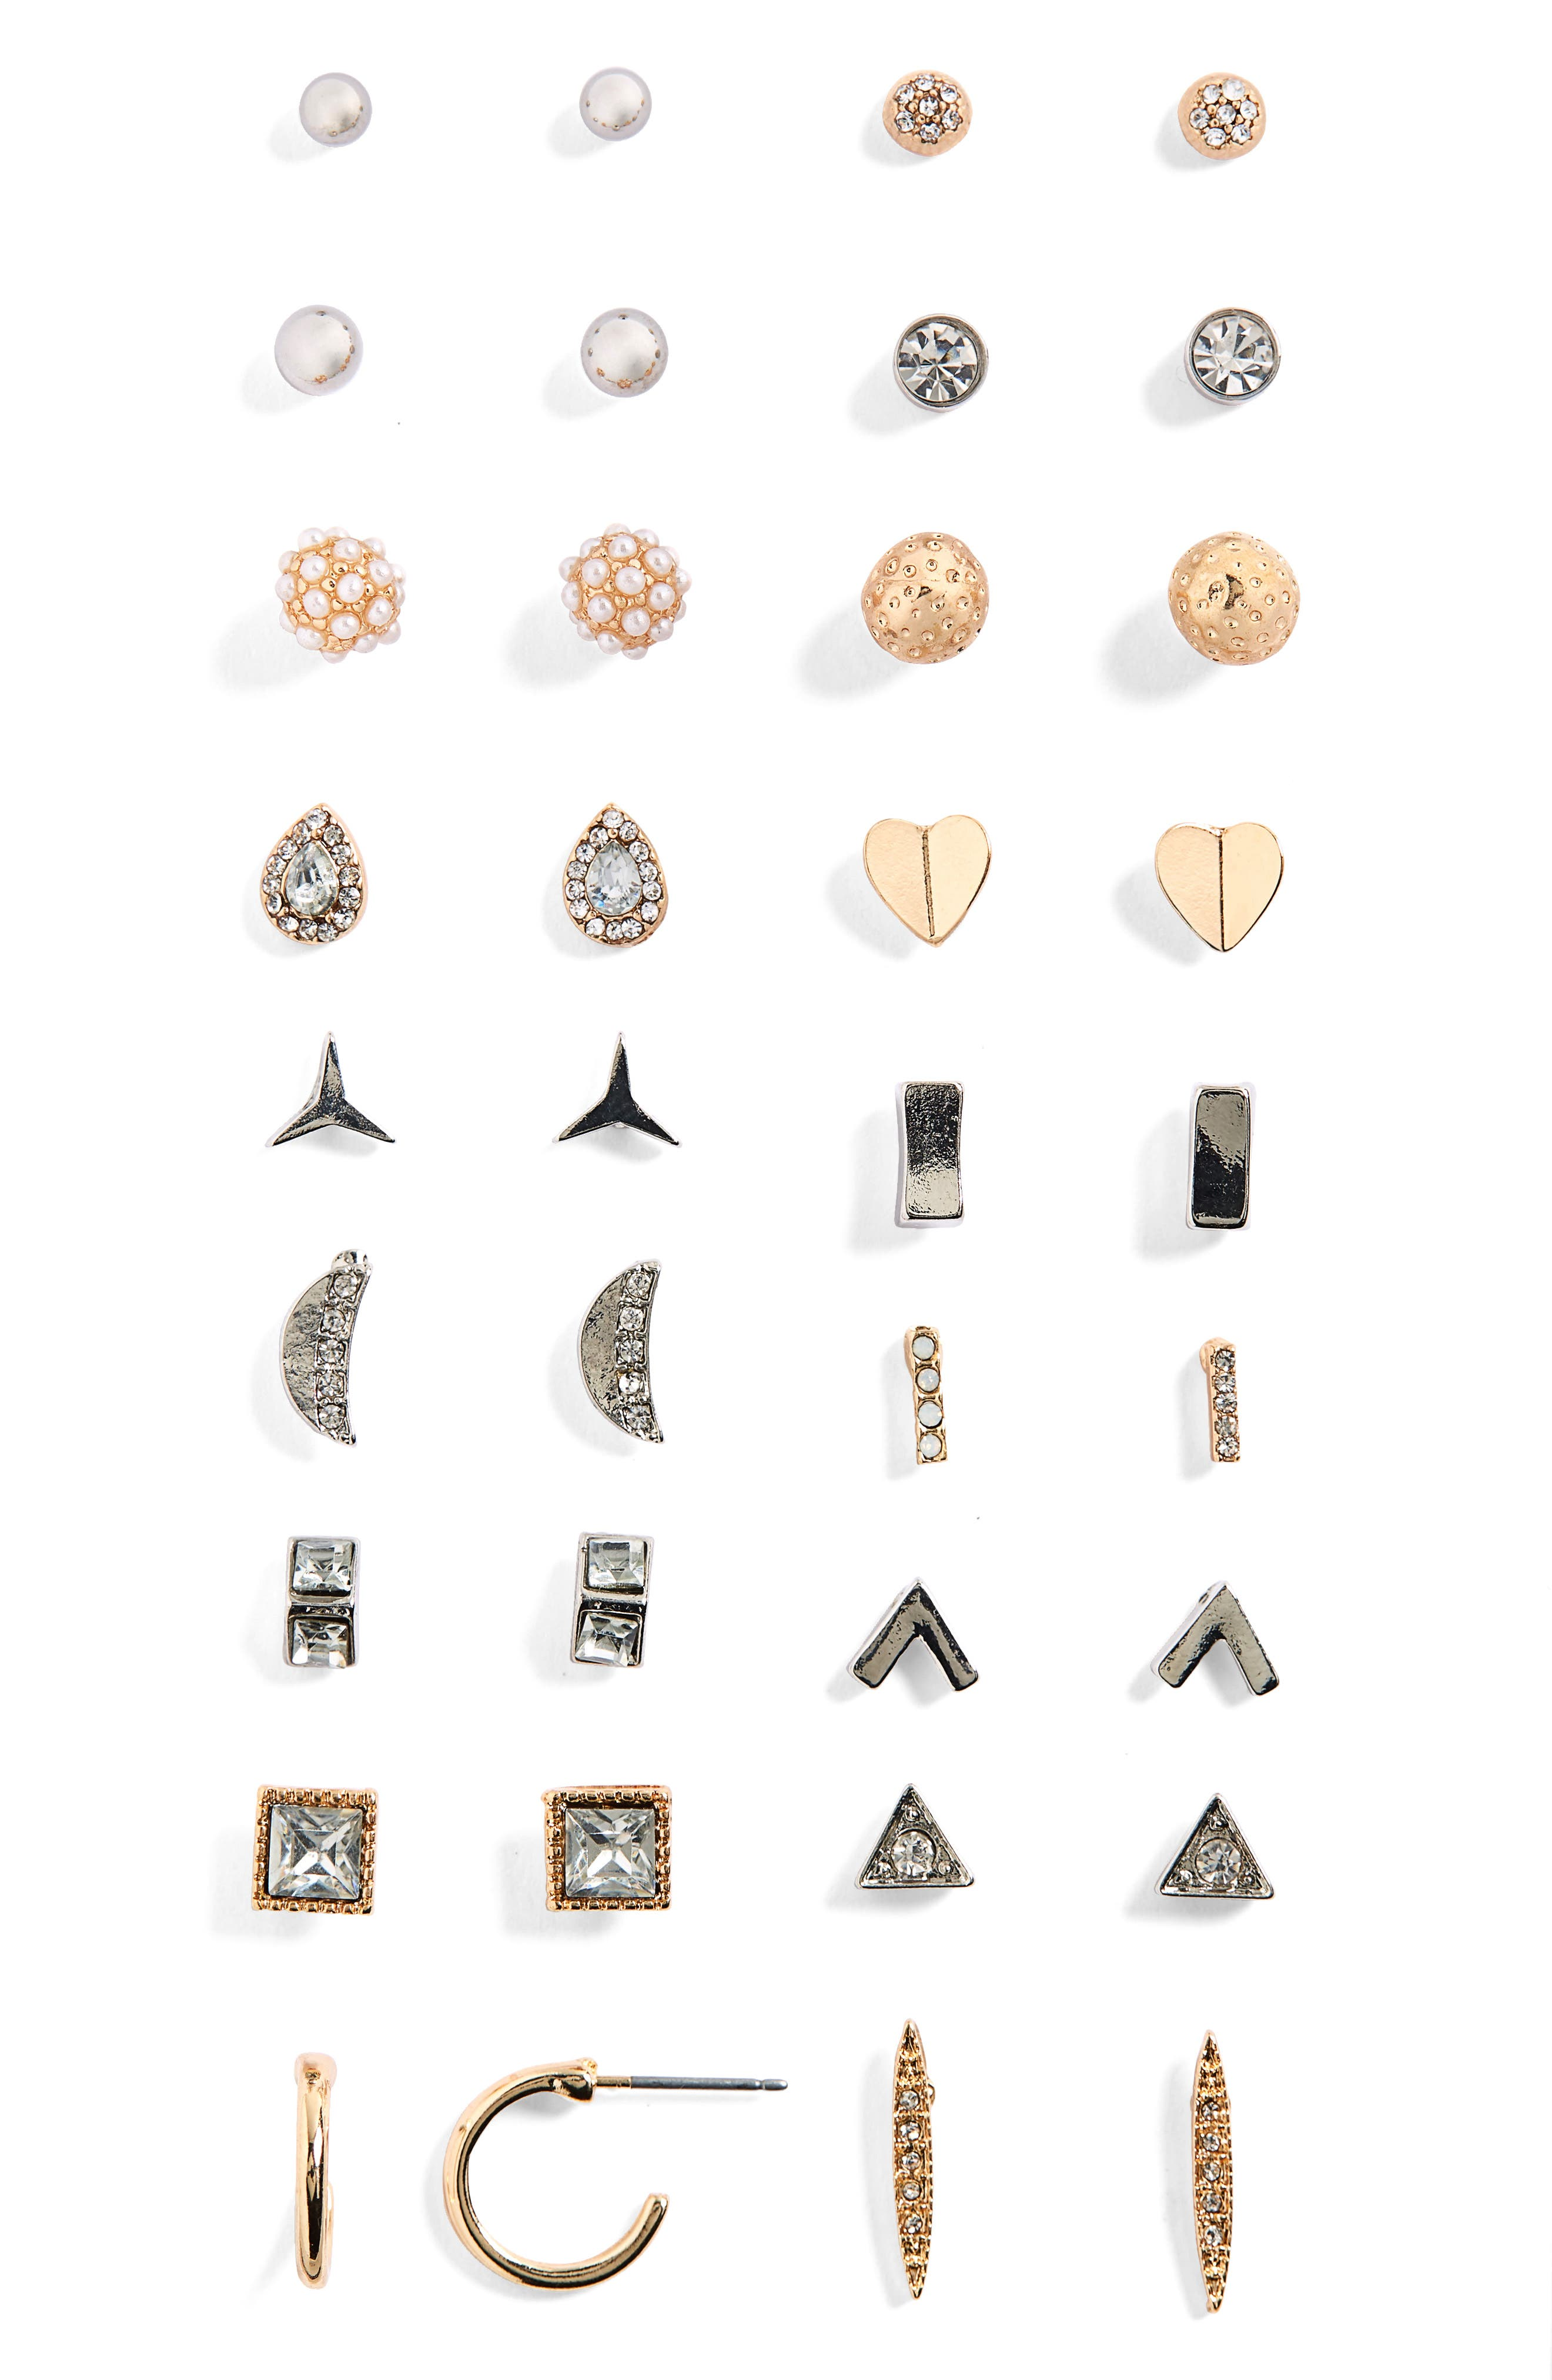 18-Pack Imitation Pearl & Crystal Stud Earrings,                         Main,                         color, Gold/ Silver